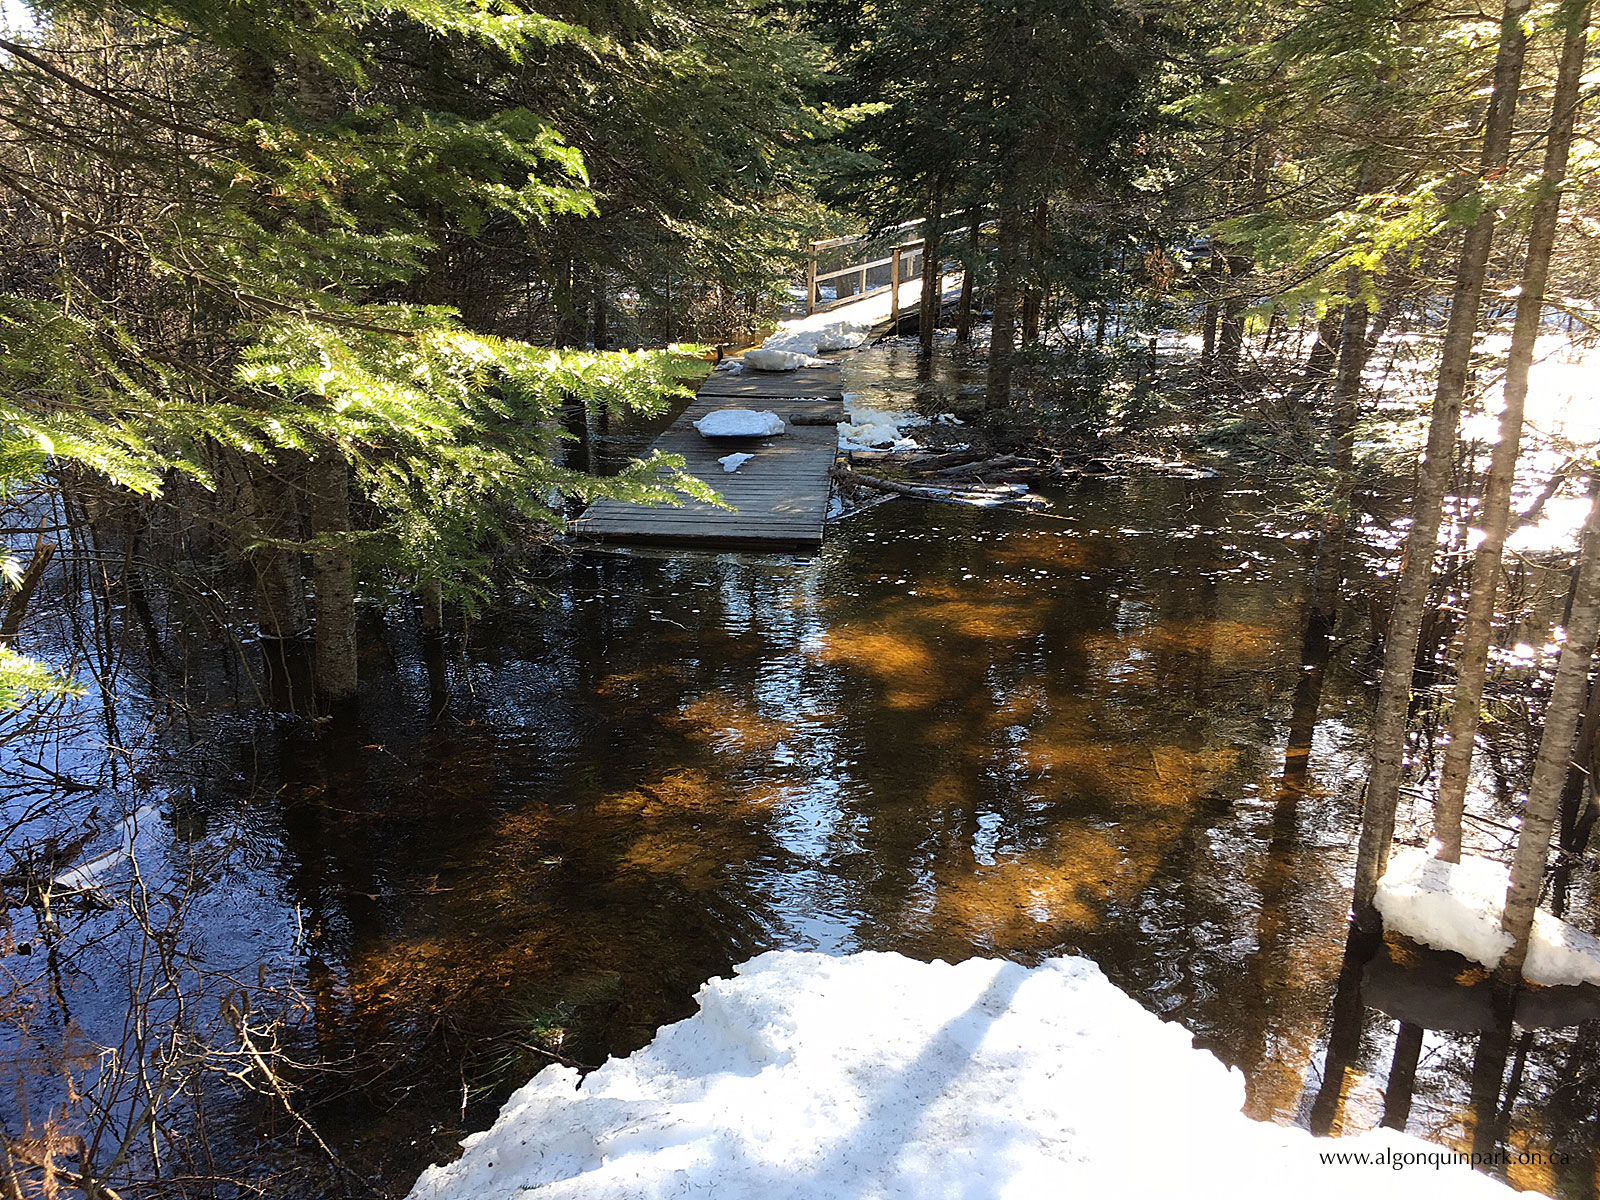 High water at the Highland Backpacking Trail in Algonquin Park on April 13, 2017.